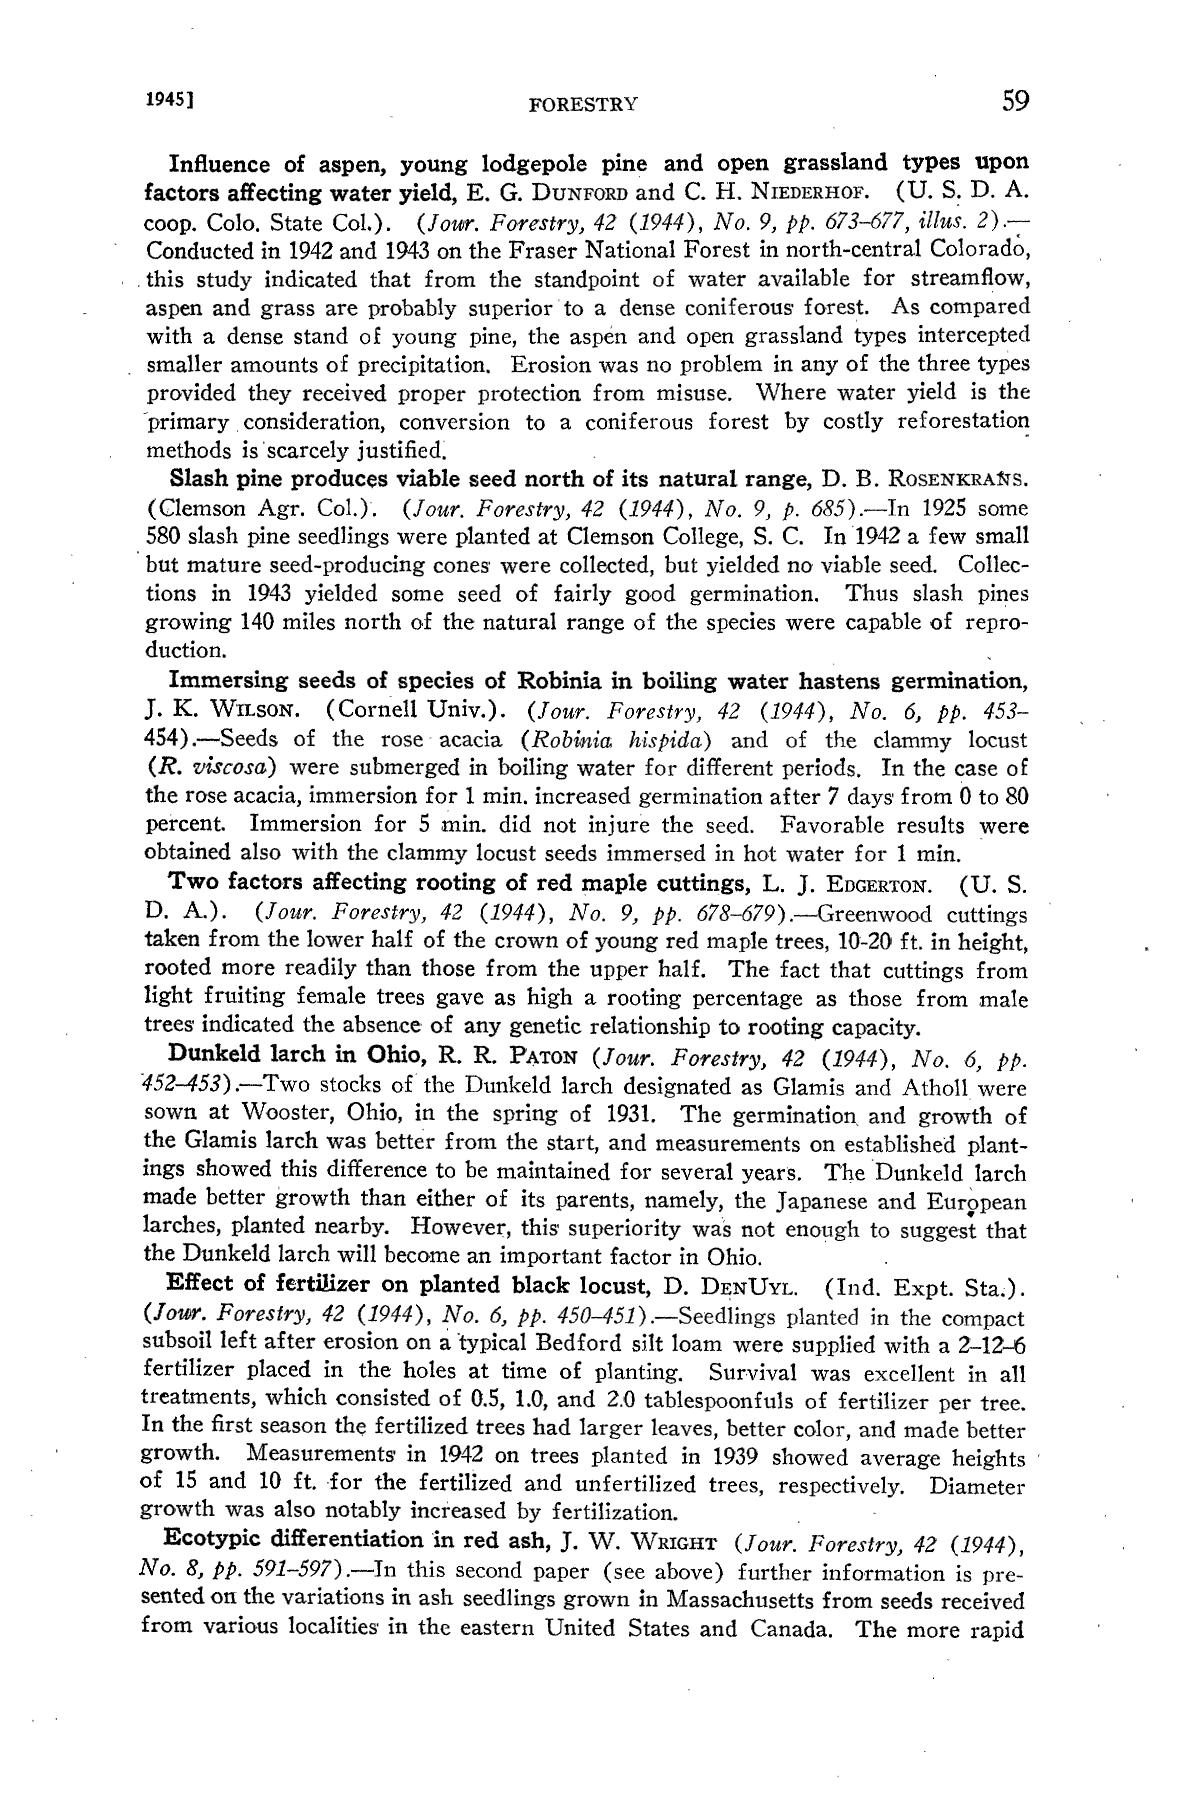 Experiment Station Record, Volume 92, January-June, 1945                                                                                                      59